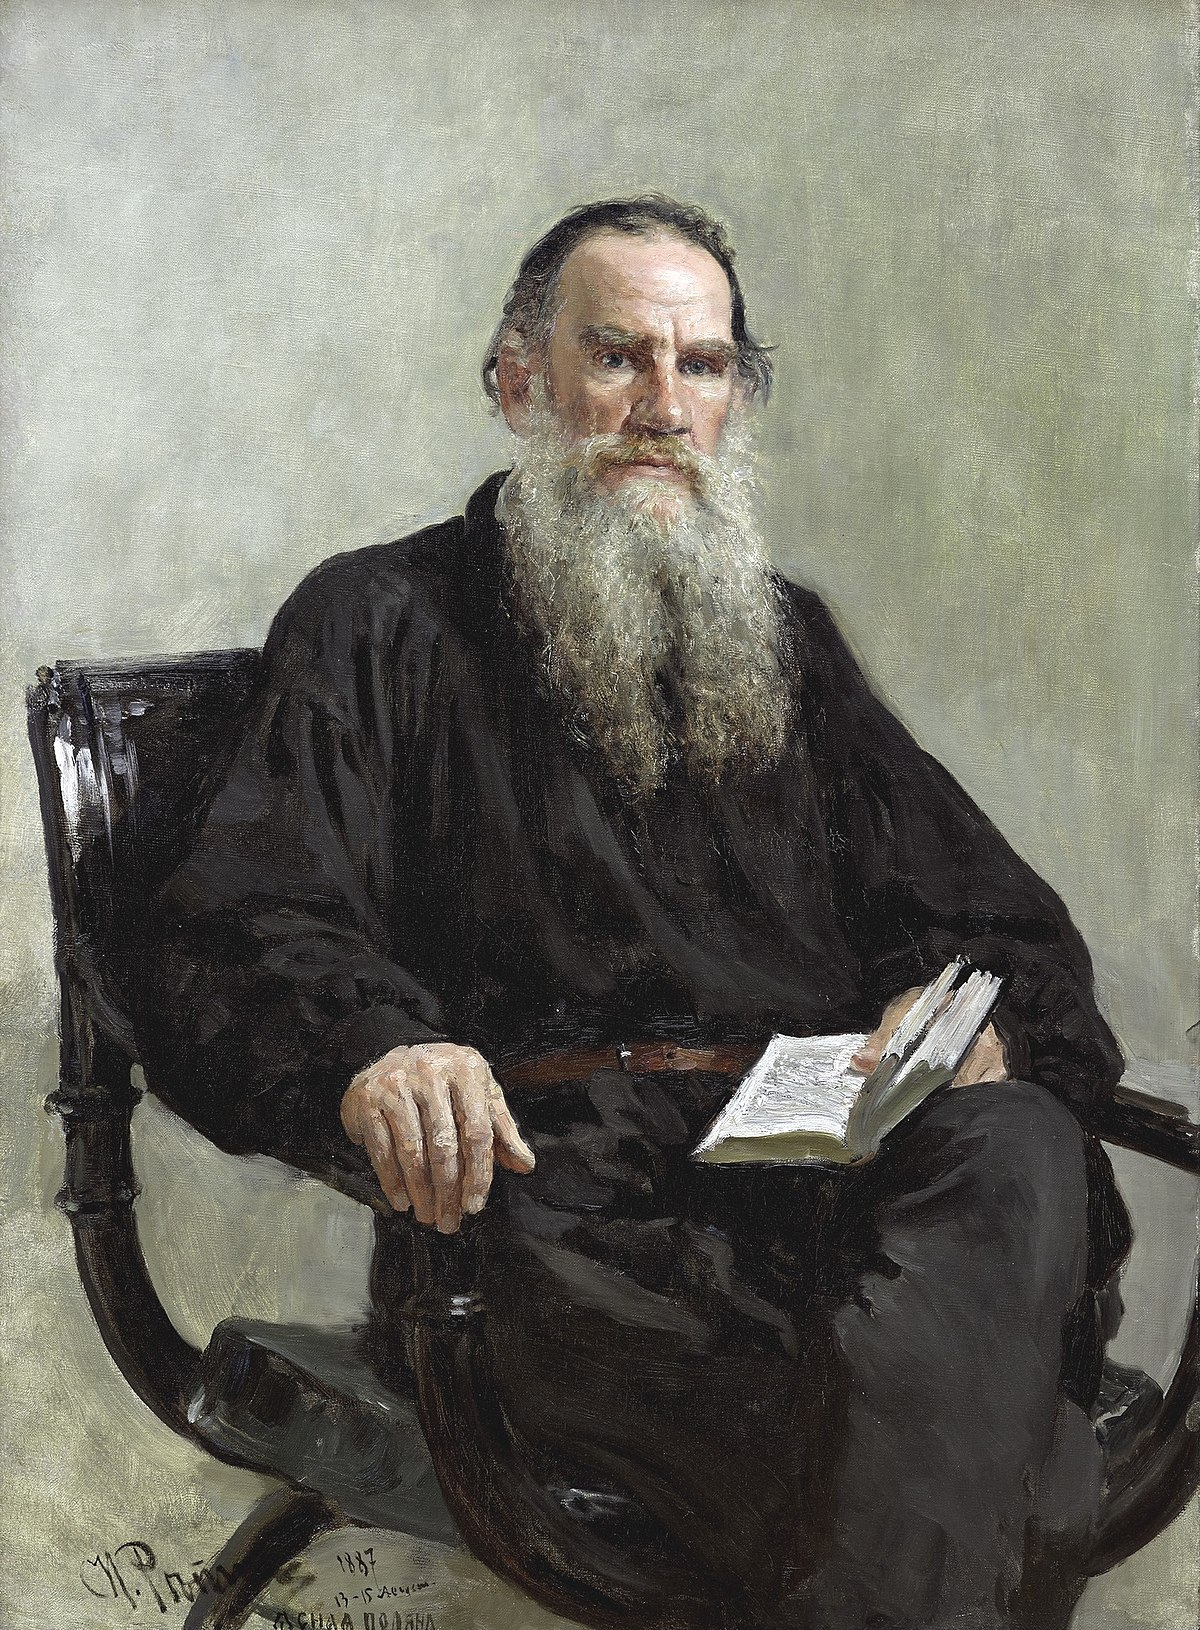 LN Tolstoy: Why do people become intoxicated? 72